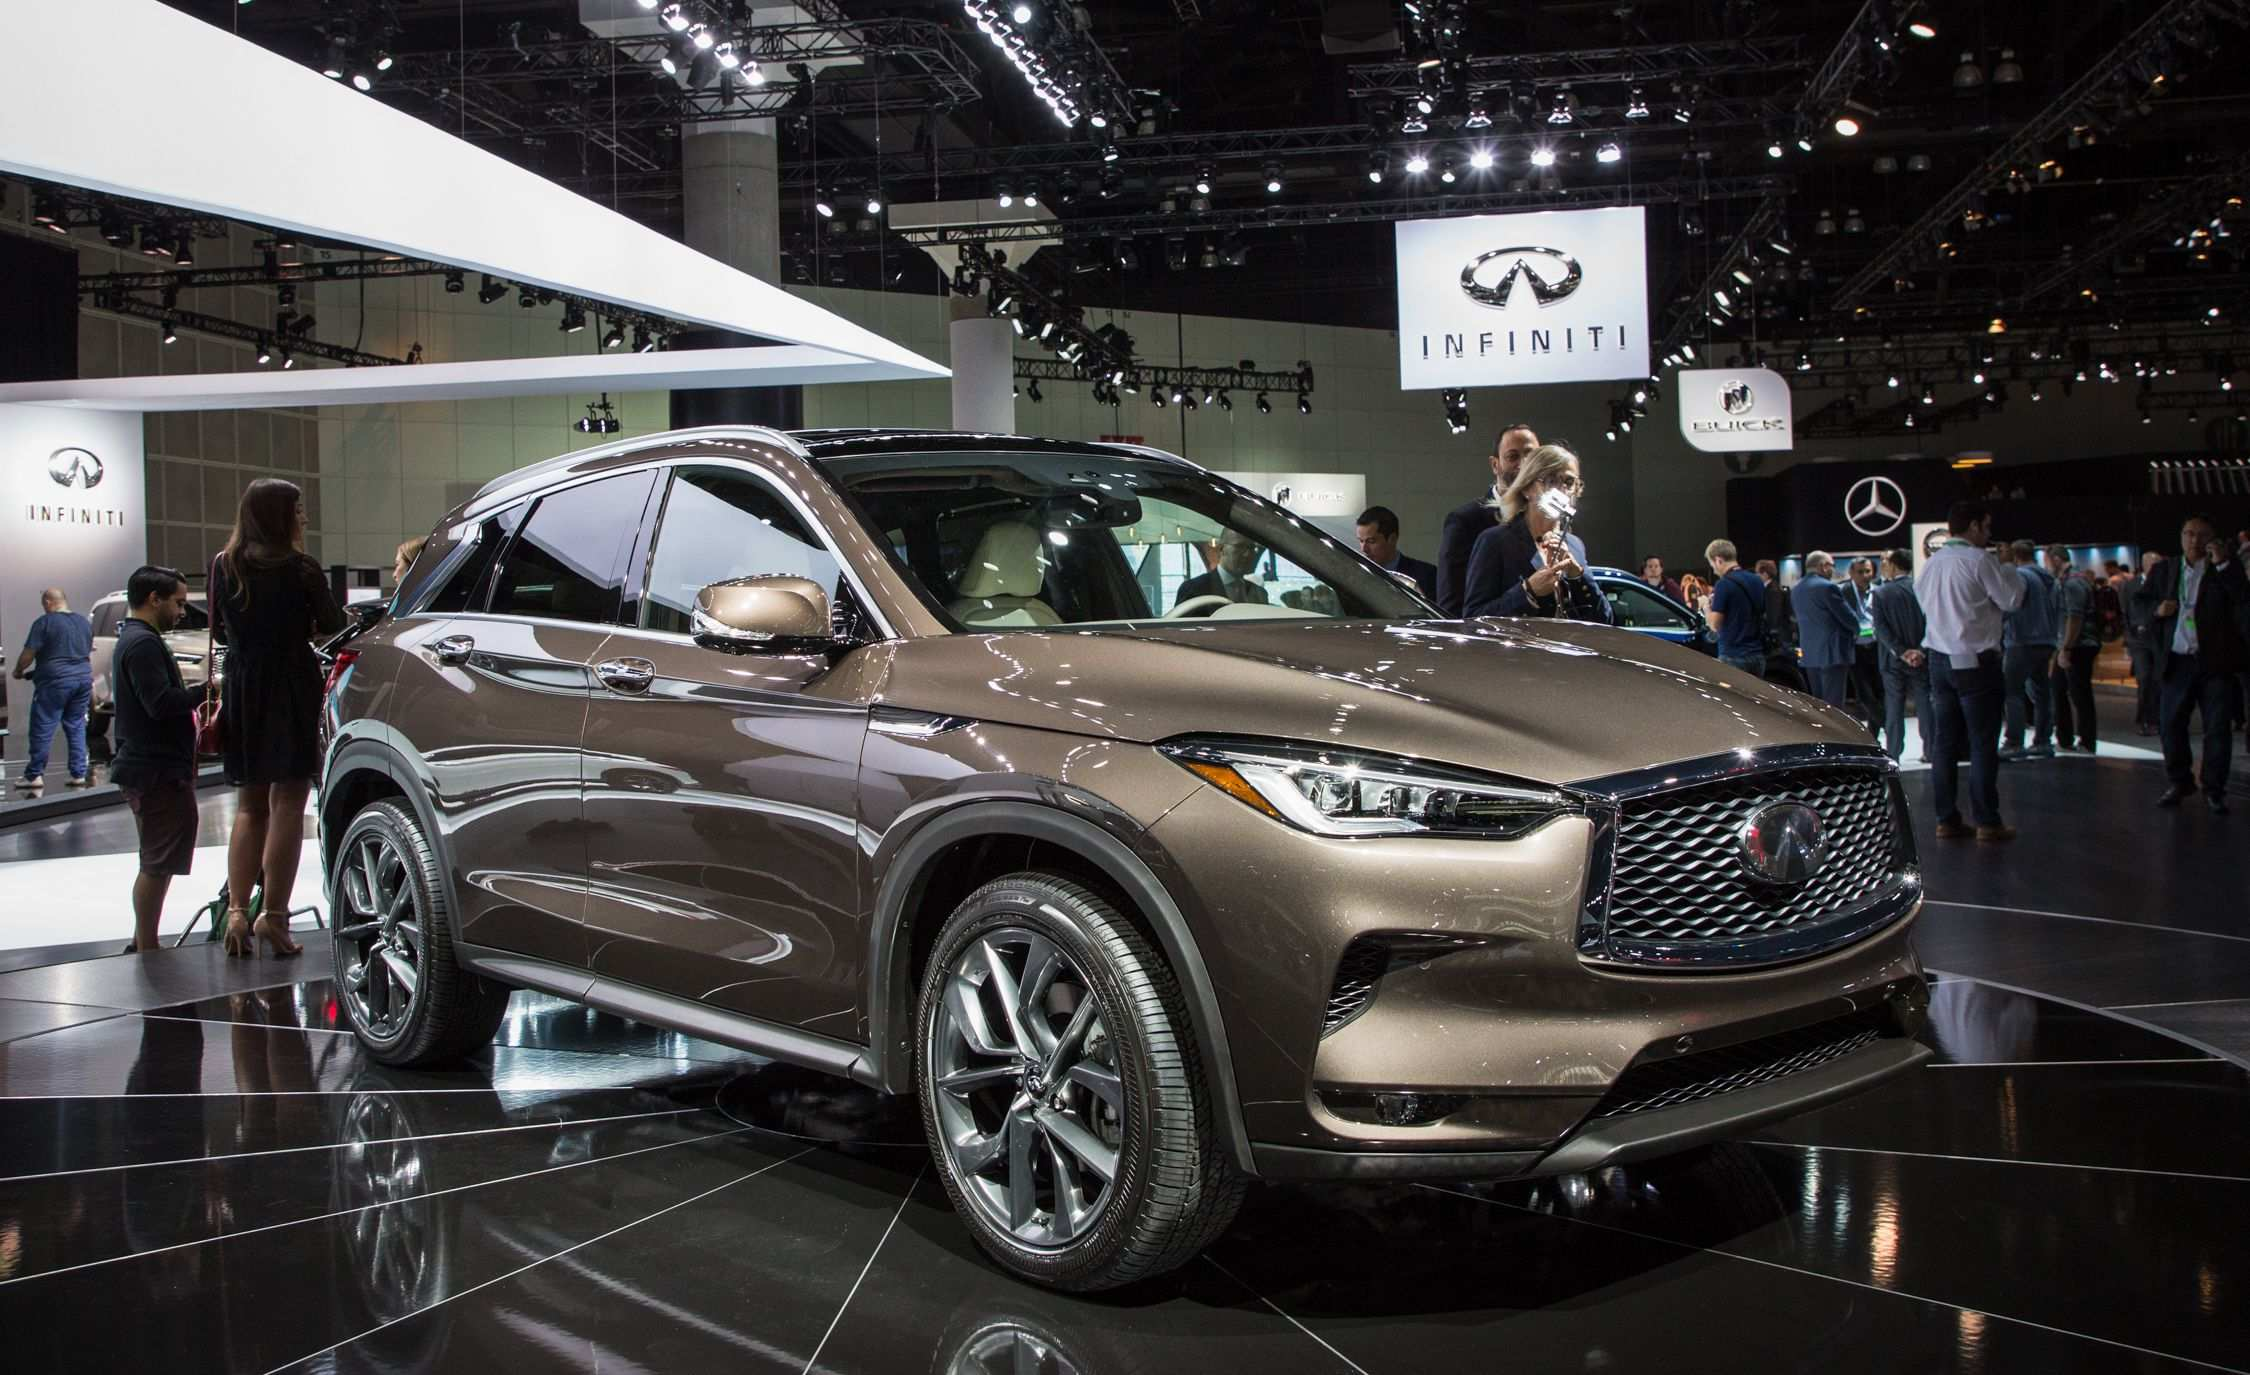 34 Gallery of 2019 Infiniti Qx50 Edmunds Performance and New Engine with 2019 Infiniti Qx50 Edmunds